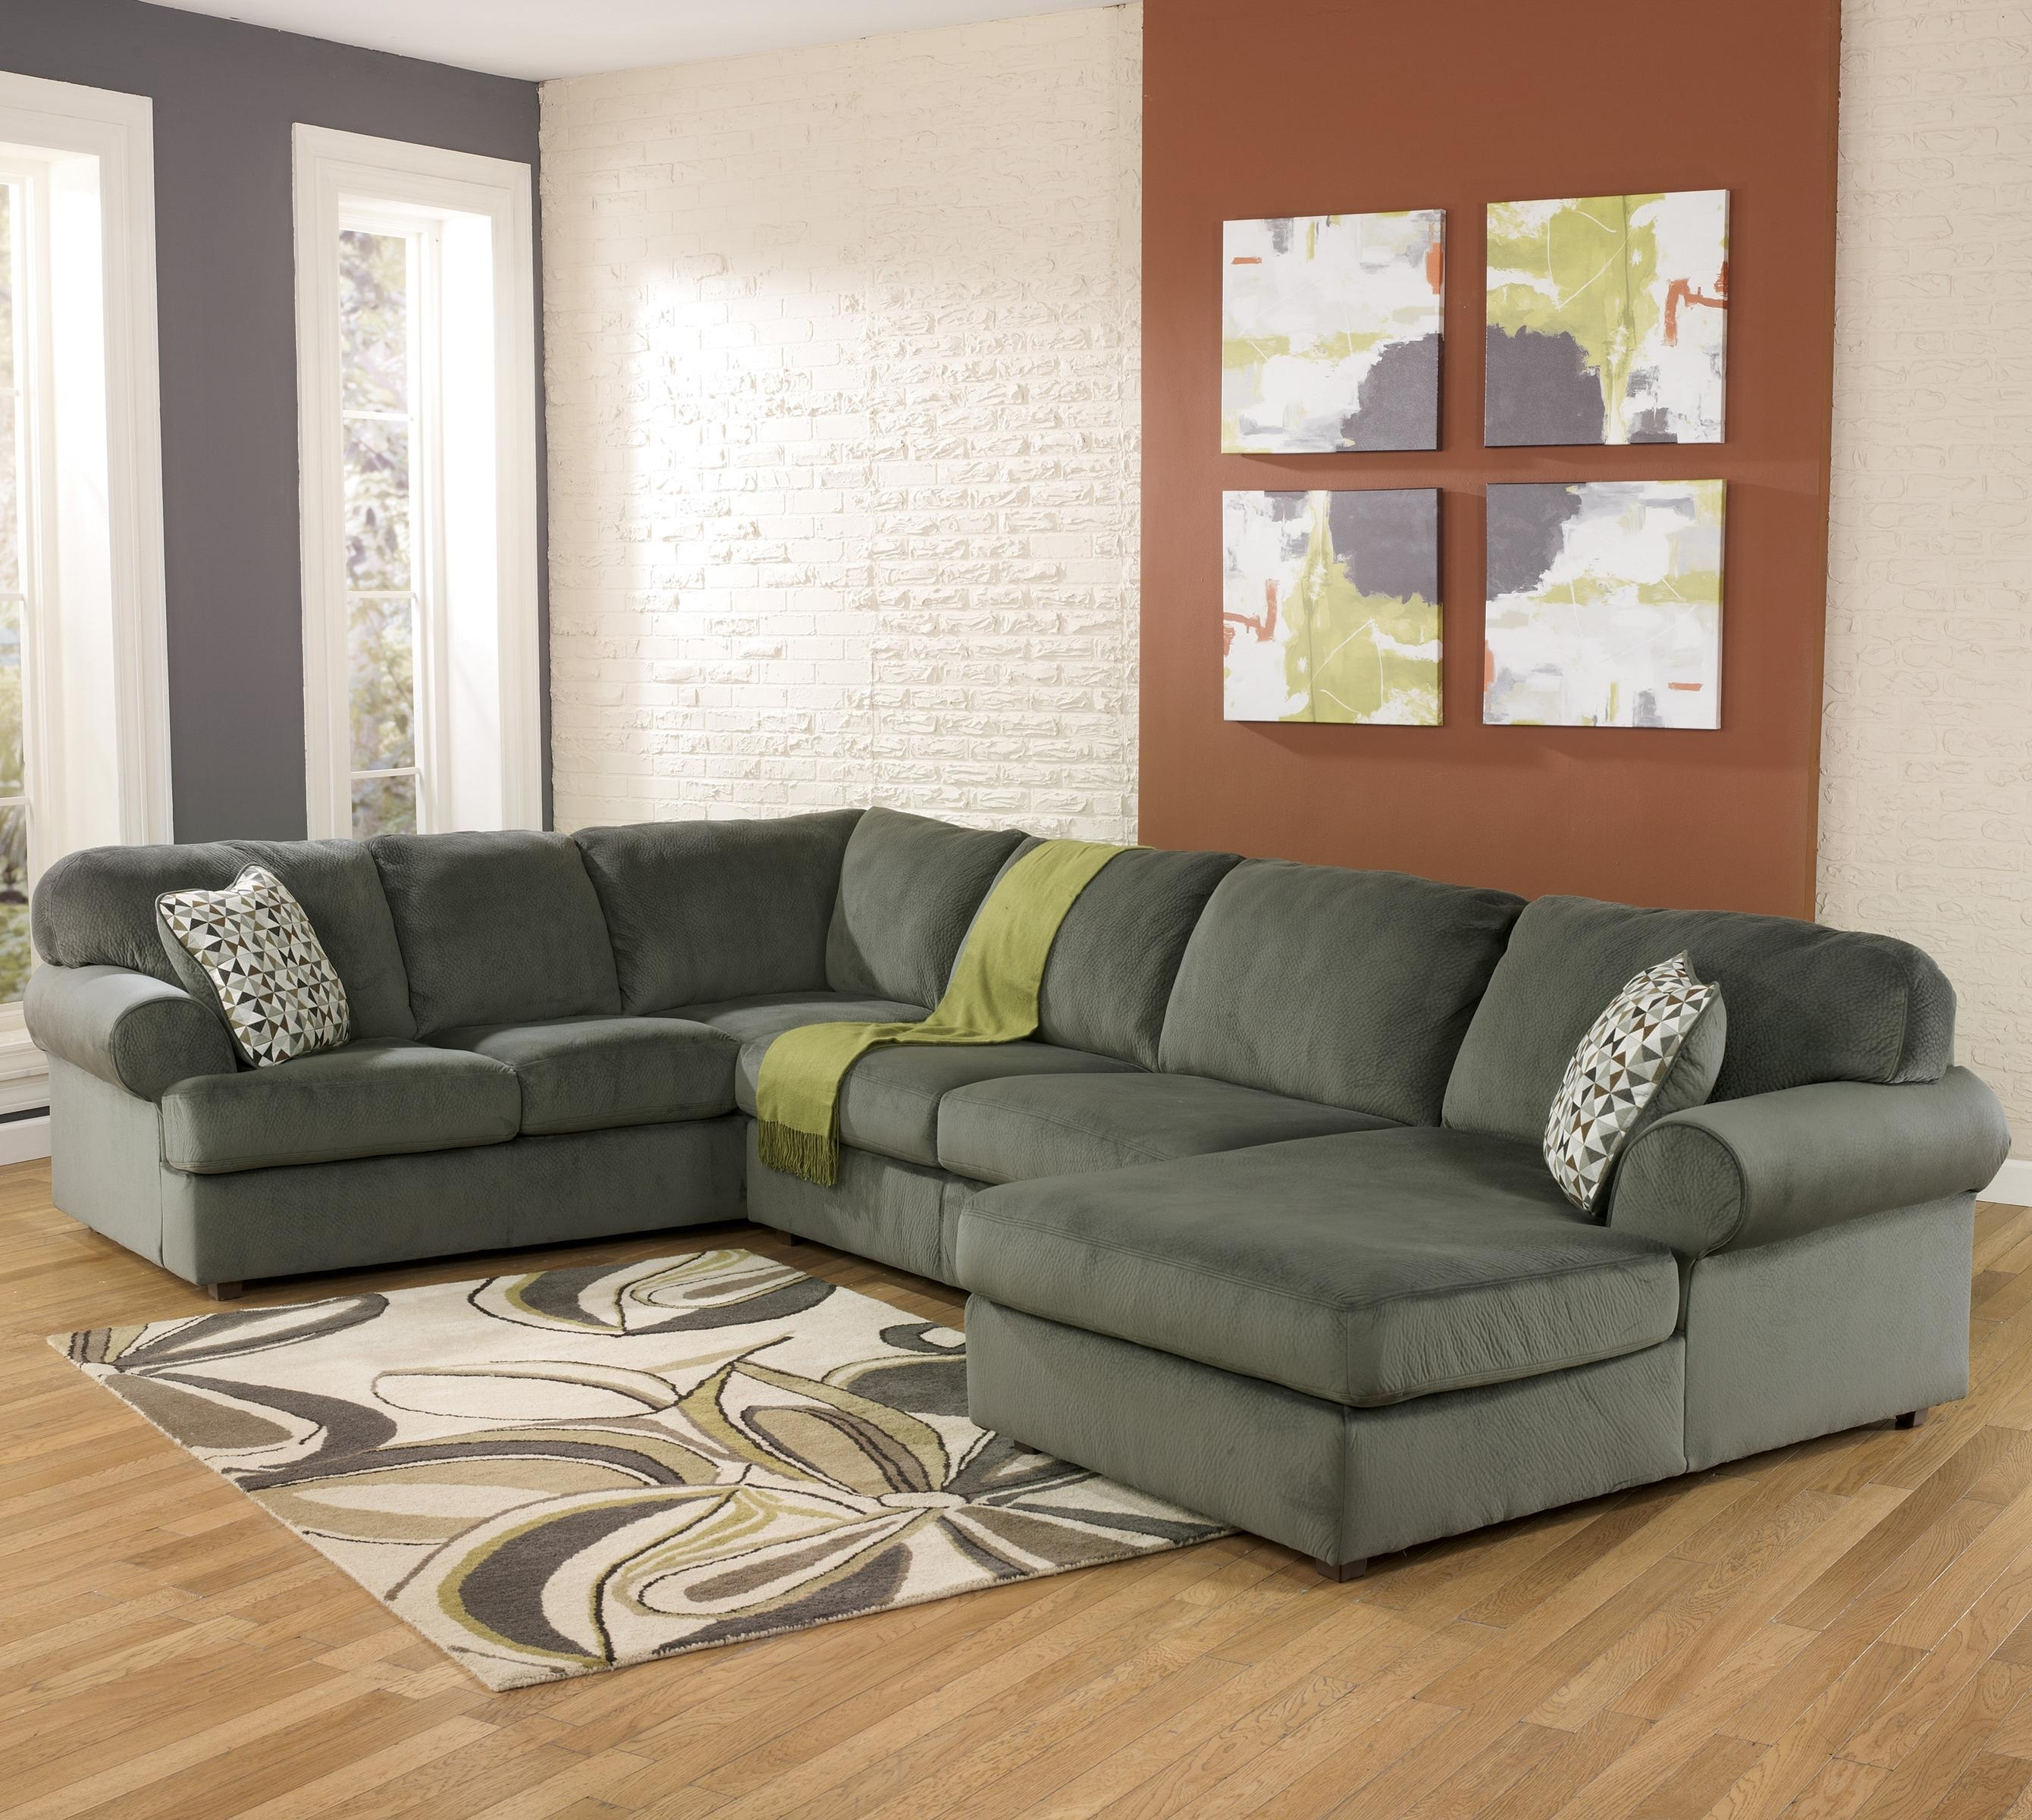 Casual Sectional Sofa With Right Chaisesignature Design For Lancaster Pa Sectional Sofas (View 6 of 10)